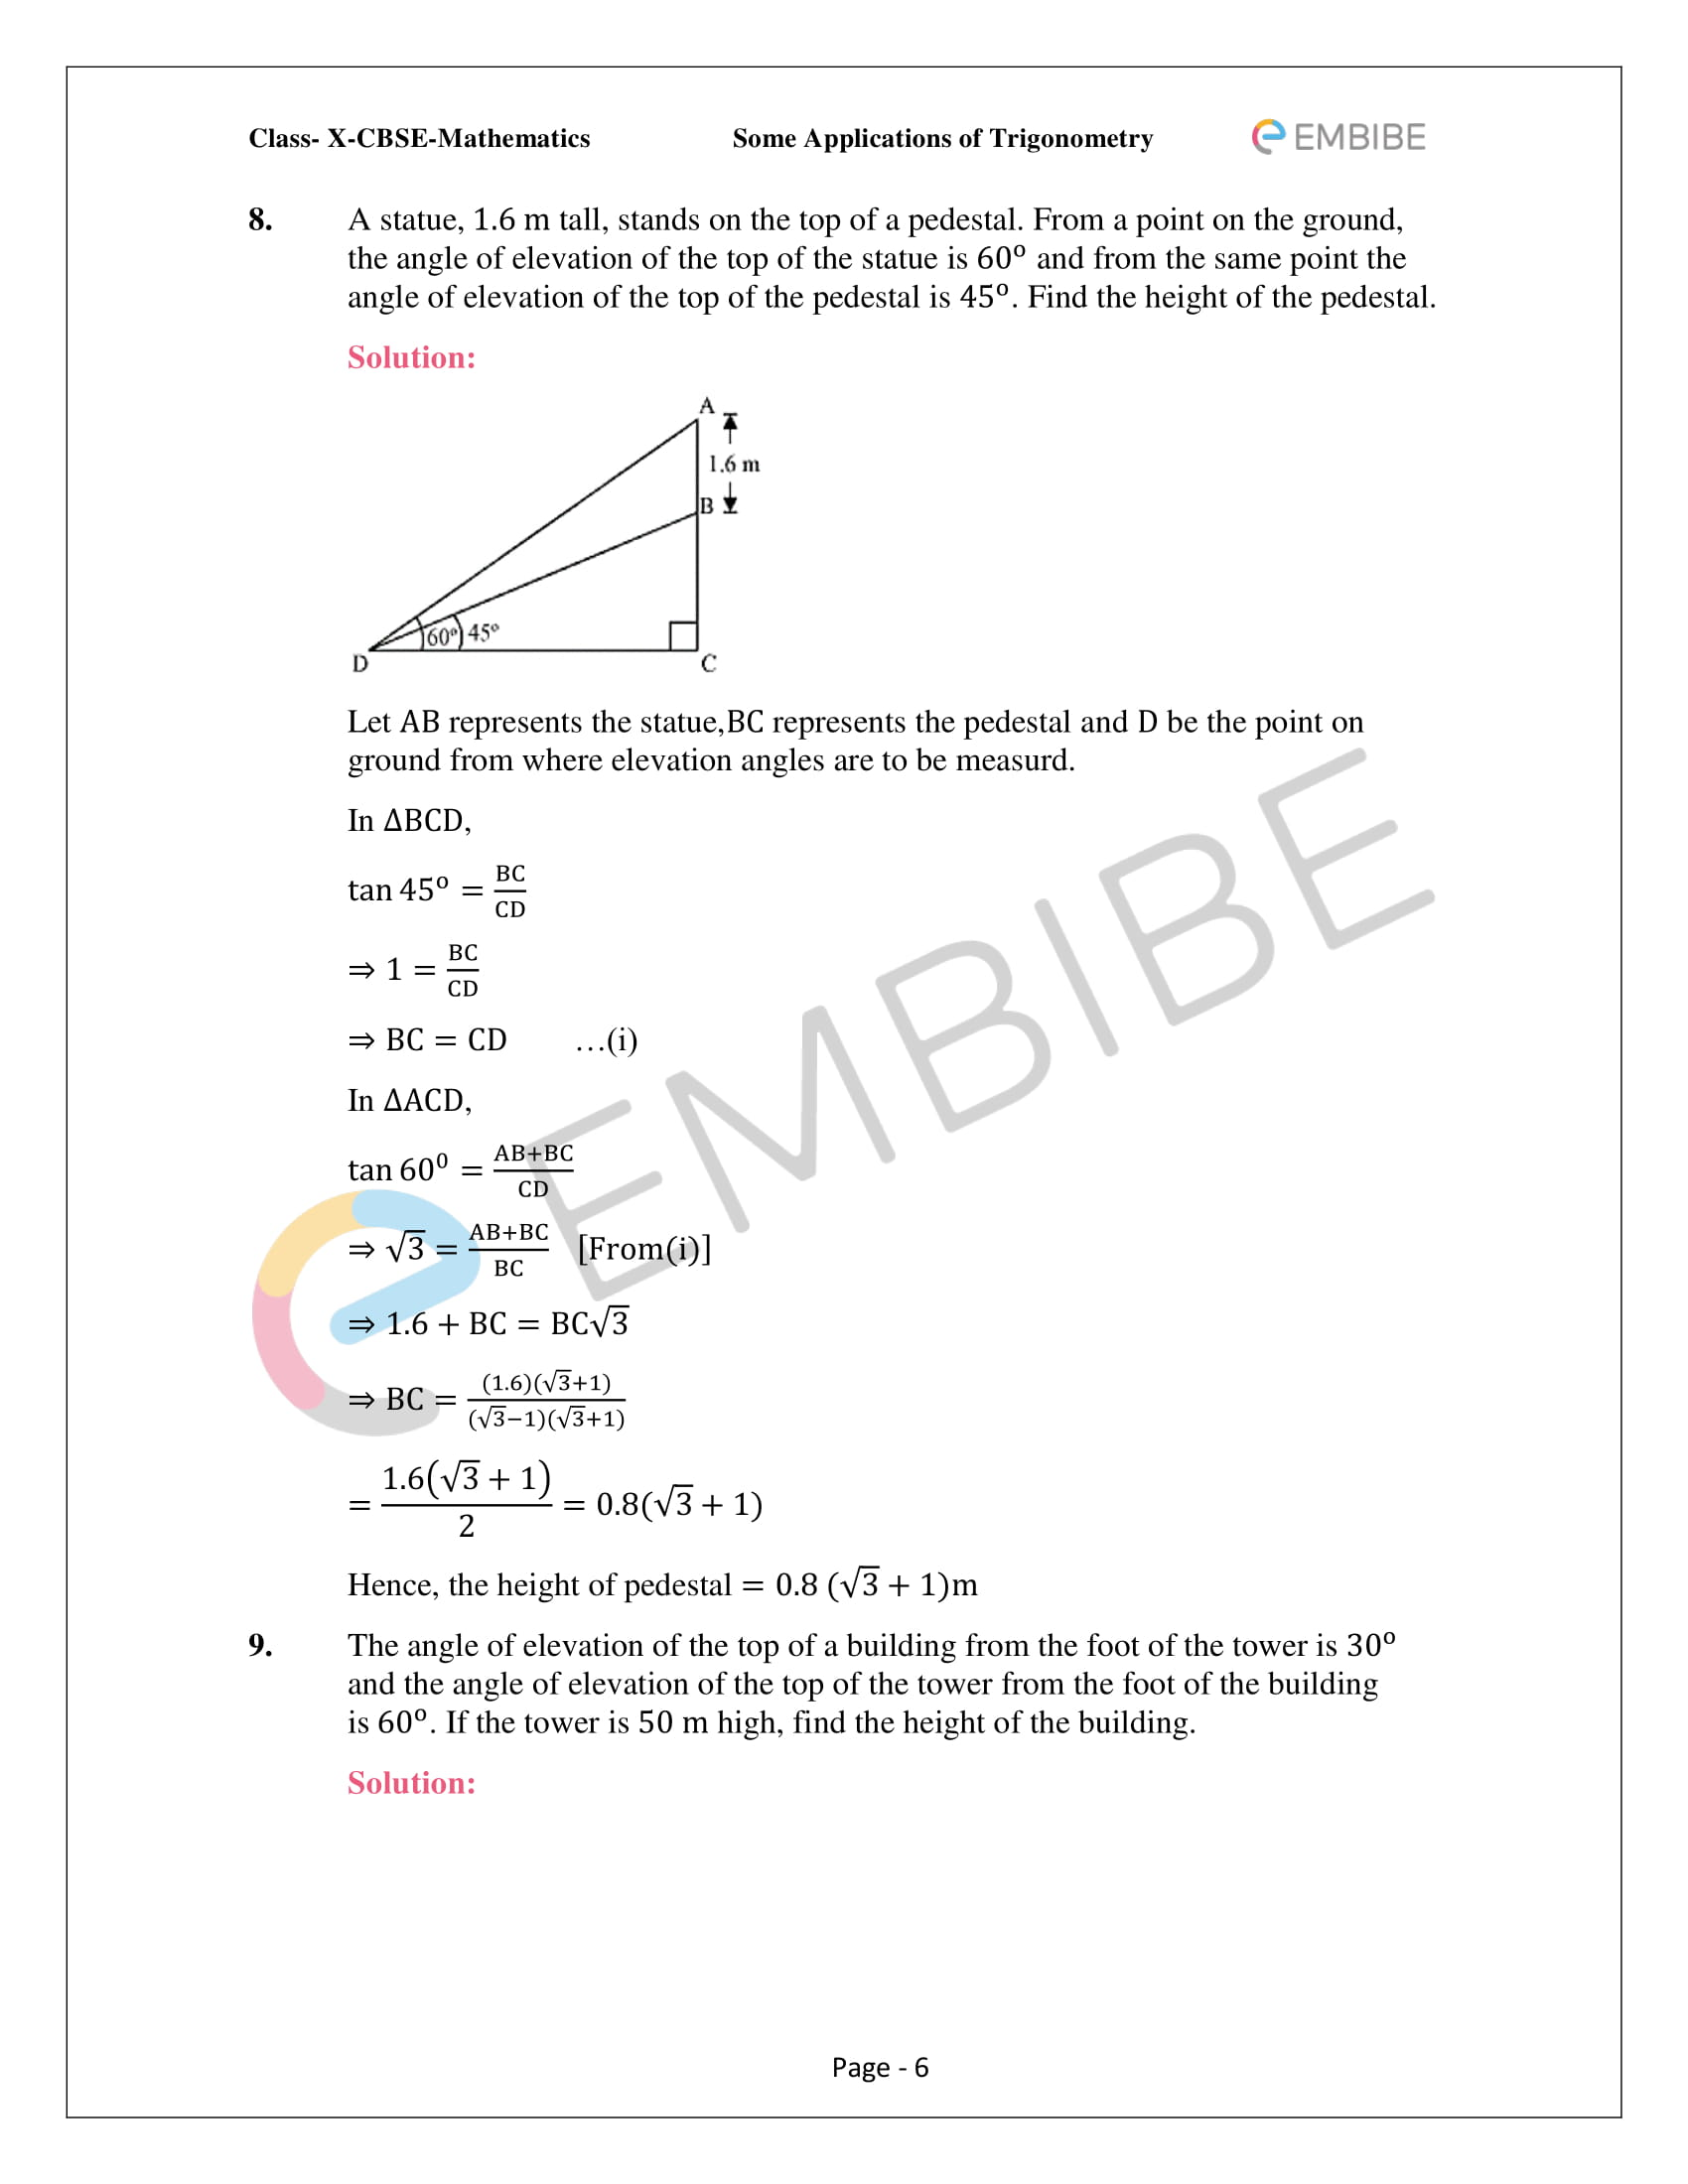 CBSE NCERT Solutions For Class 10 Maths Chapter 9 –Introduction To Trigonometry - 6